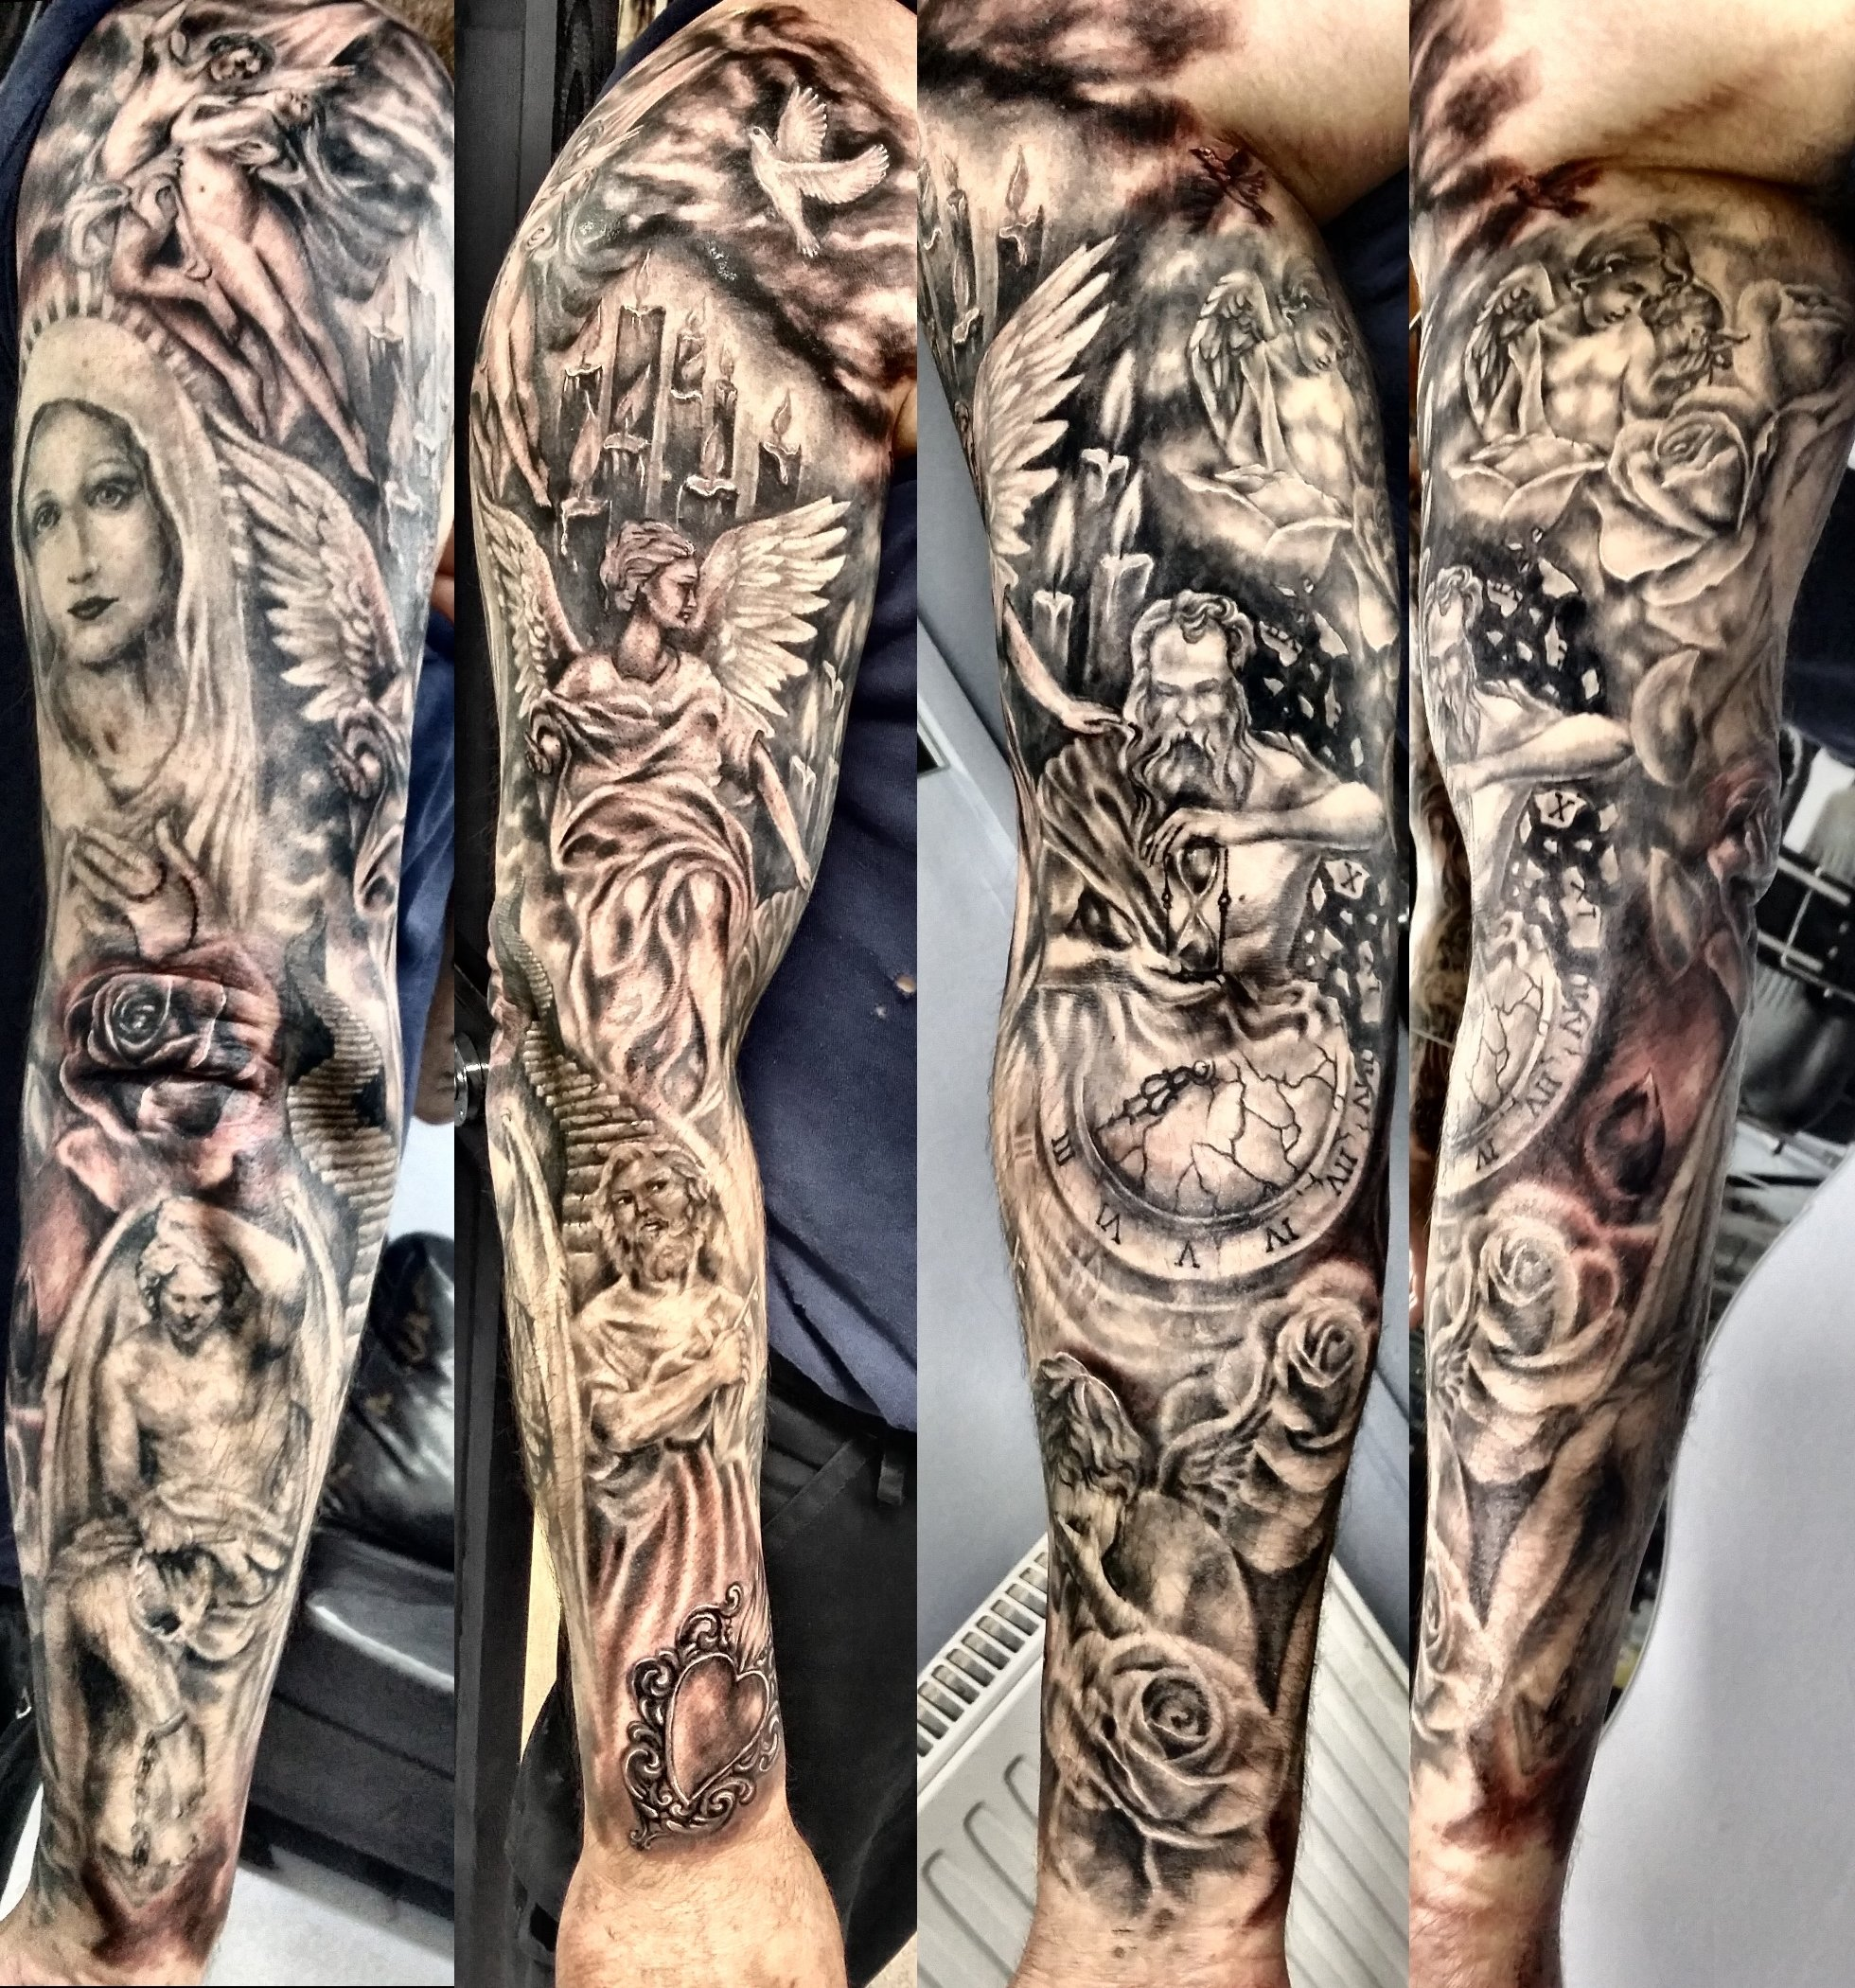 10 Famous Religious Tattoo Ideas For Men religious tattoo sleeves for men pinterest e280a2 the worlds catalog of